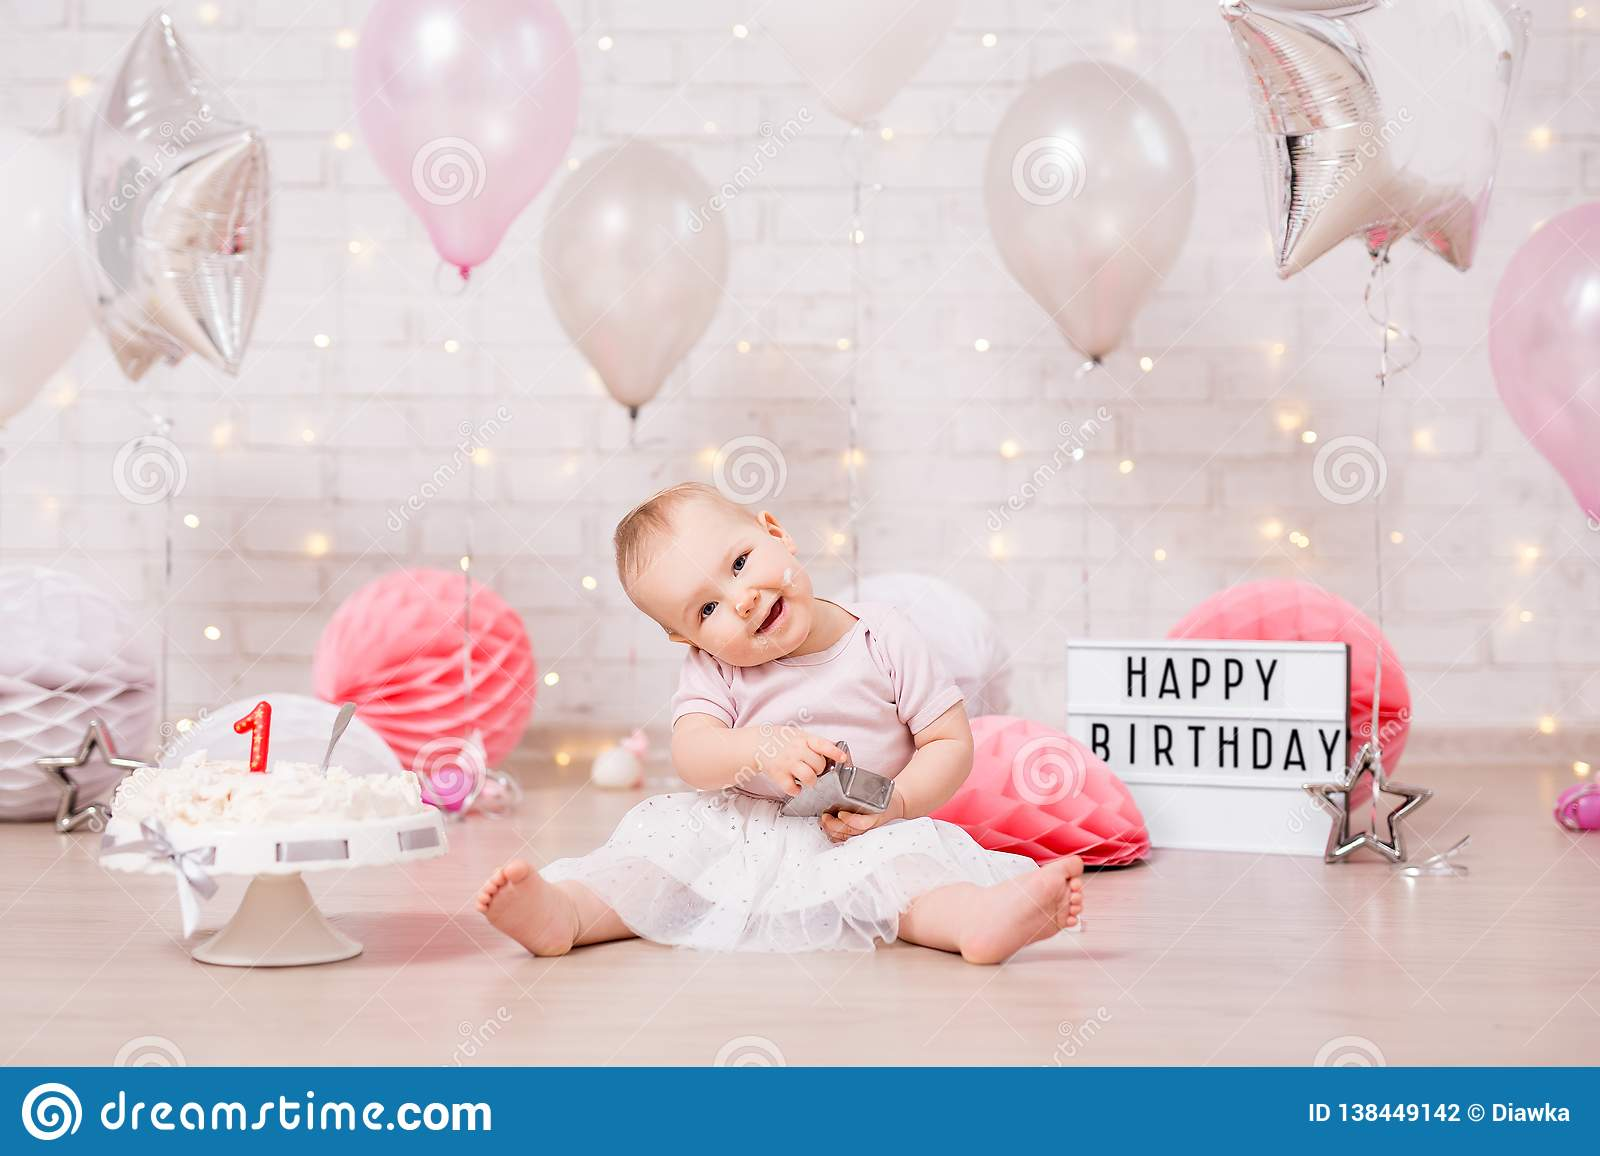 Outstanding Funny Dirty Girl And Smashed Birthday Cake Over Brick Wall With Funny Birthday Cards Online Overcheapnameinfo